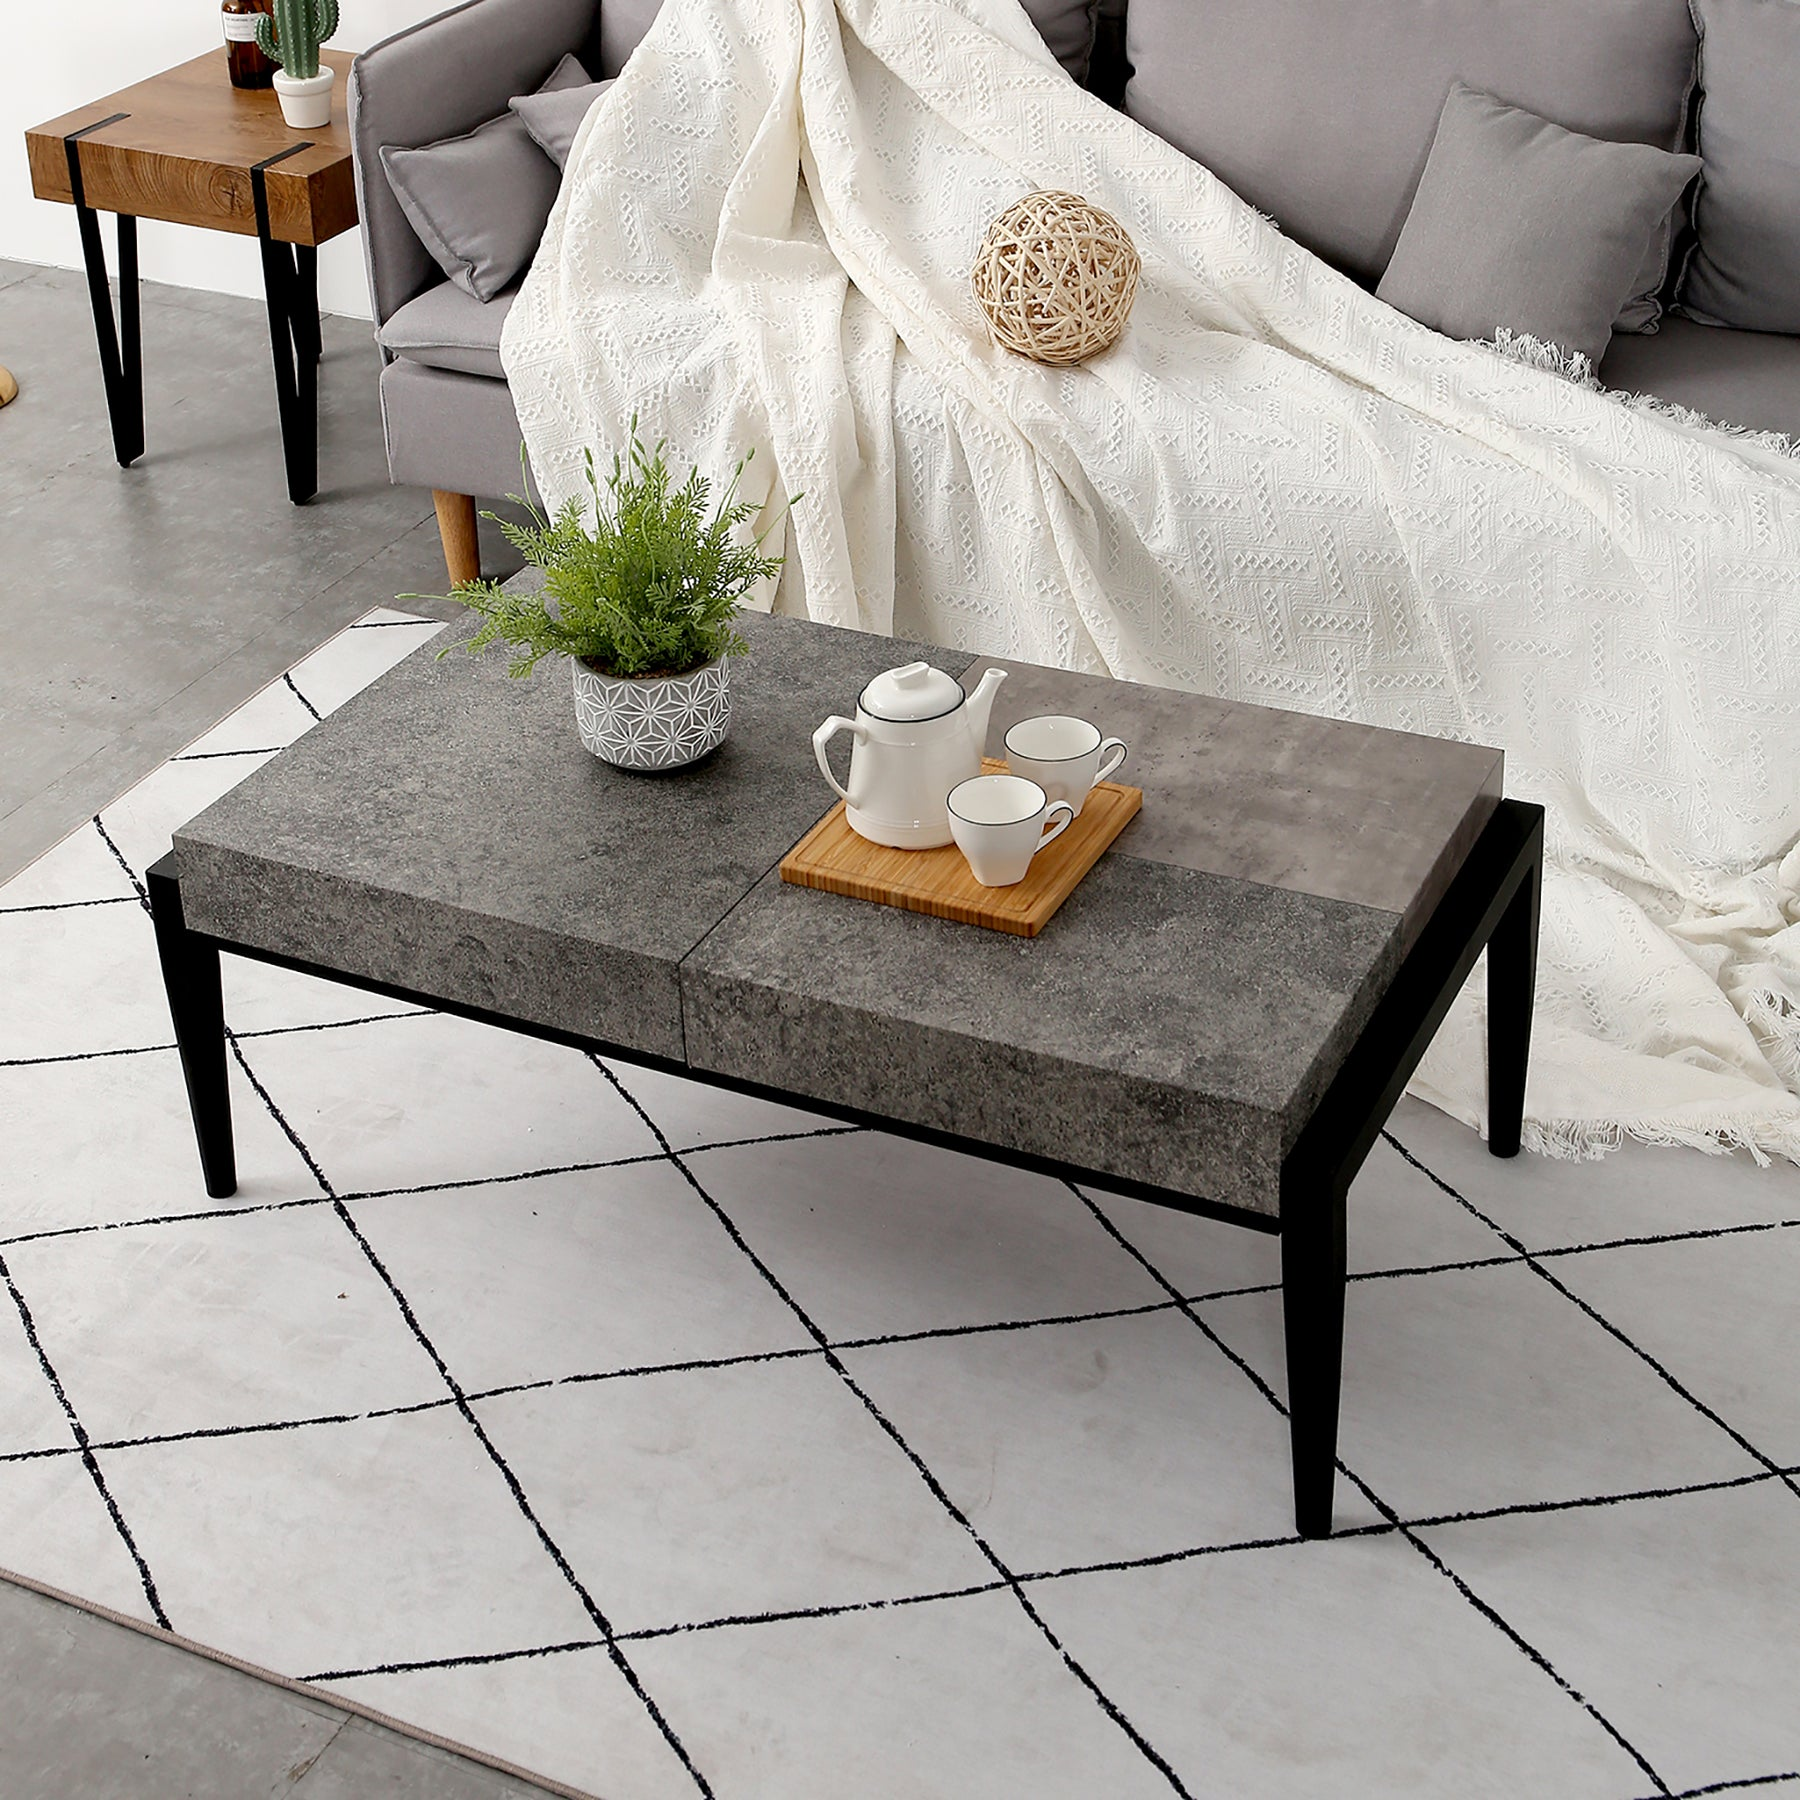 Mcombo Modern Industrial Coffee Table Gray Cement Finish Thicker